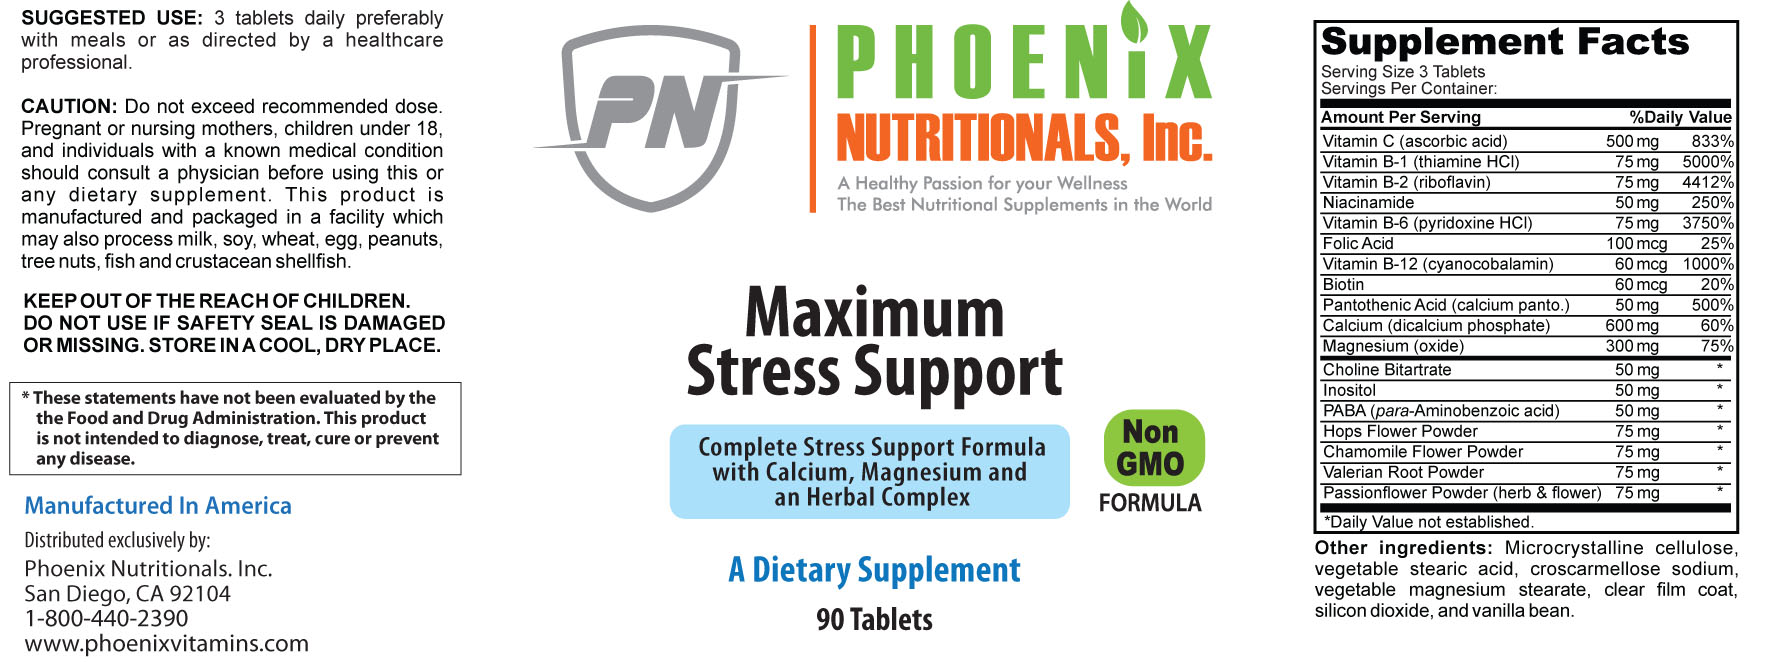 Maximum Stress Support Supplement Facts Box These